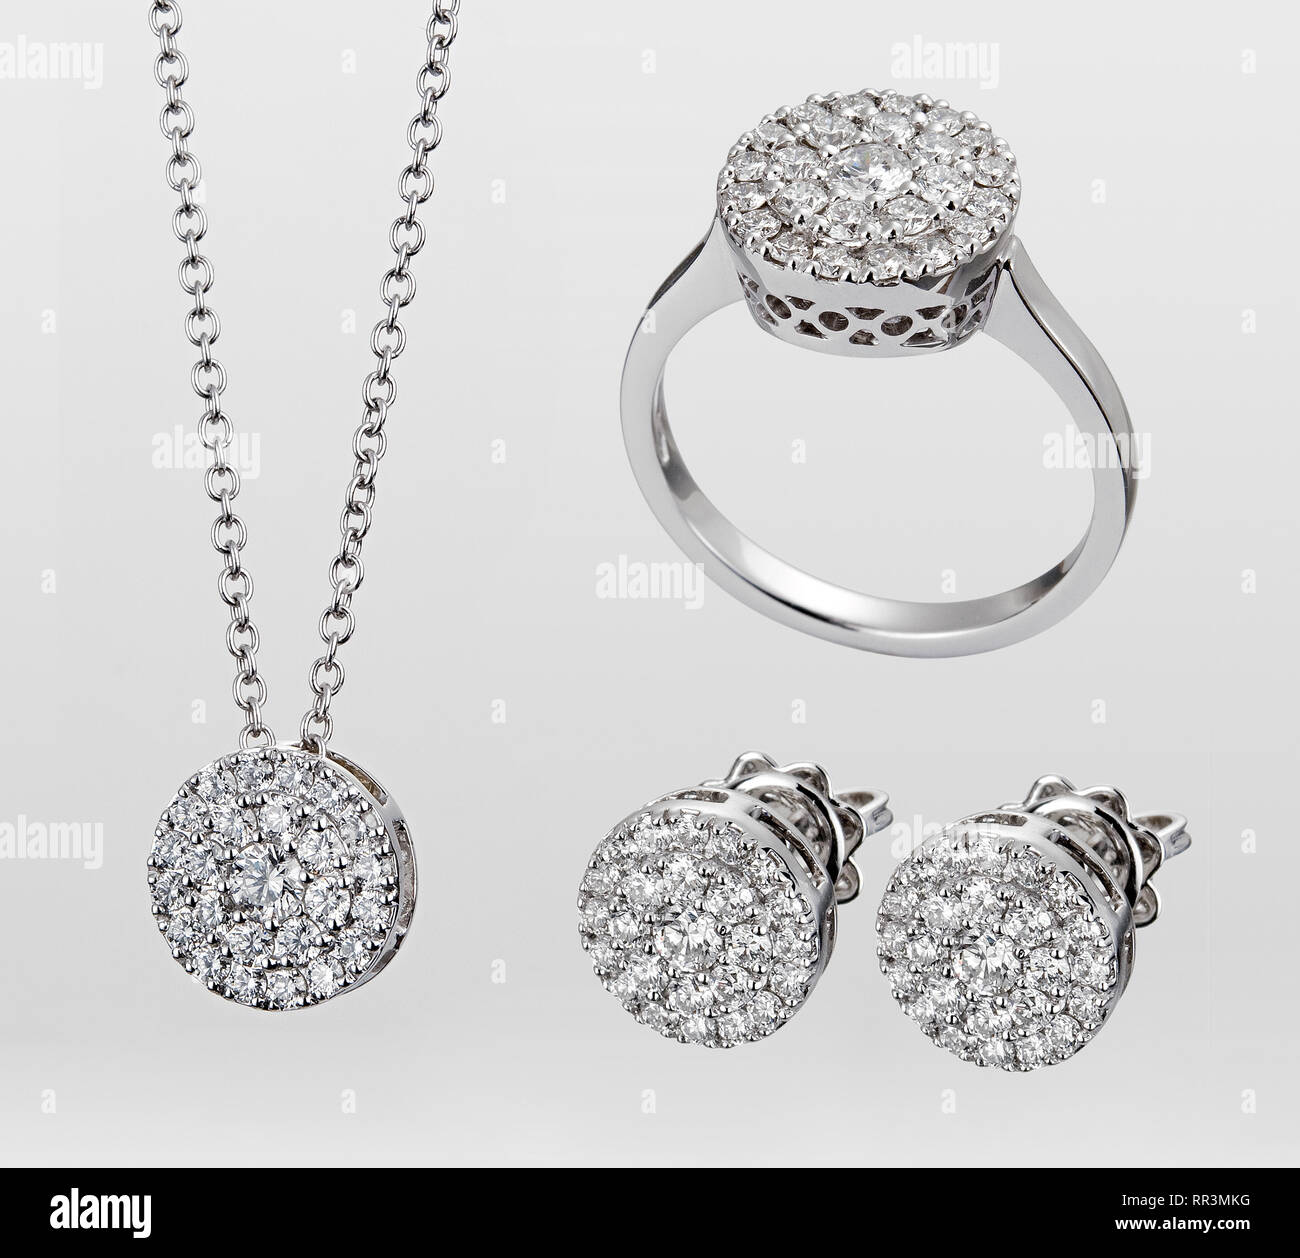 A demi-parure of gemstone jewellery in white gold or silver consisting of three matching pieces - necklace, earrings and ring isolated over a white ba - Stock Image